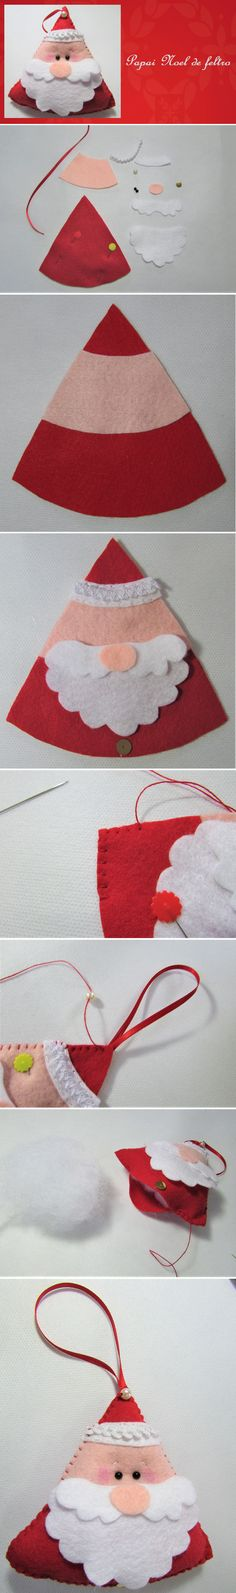 How to Make a Felt Santa Claus Felt Christmas Ornaments, Christmas Crafts For Kids, Kids Christmas, Felt Crafts, Holiday Crafts, Fabric Crafts, Sewing Crafts, Sewing Projects, Felt Decorations